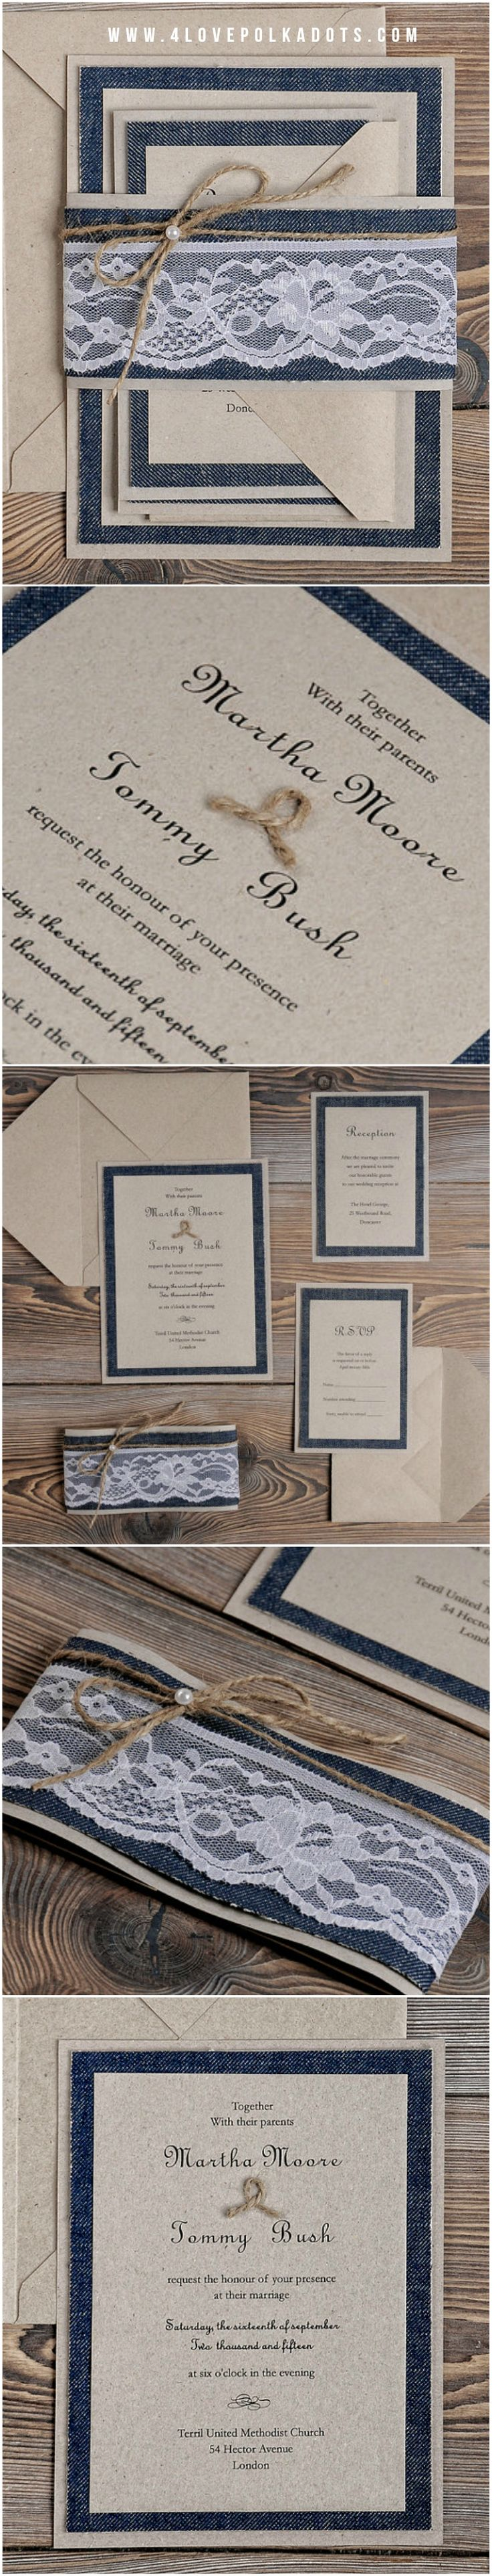 lace wedding invitation wrap%0A Denim and lace envelope wrap